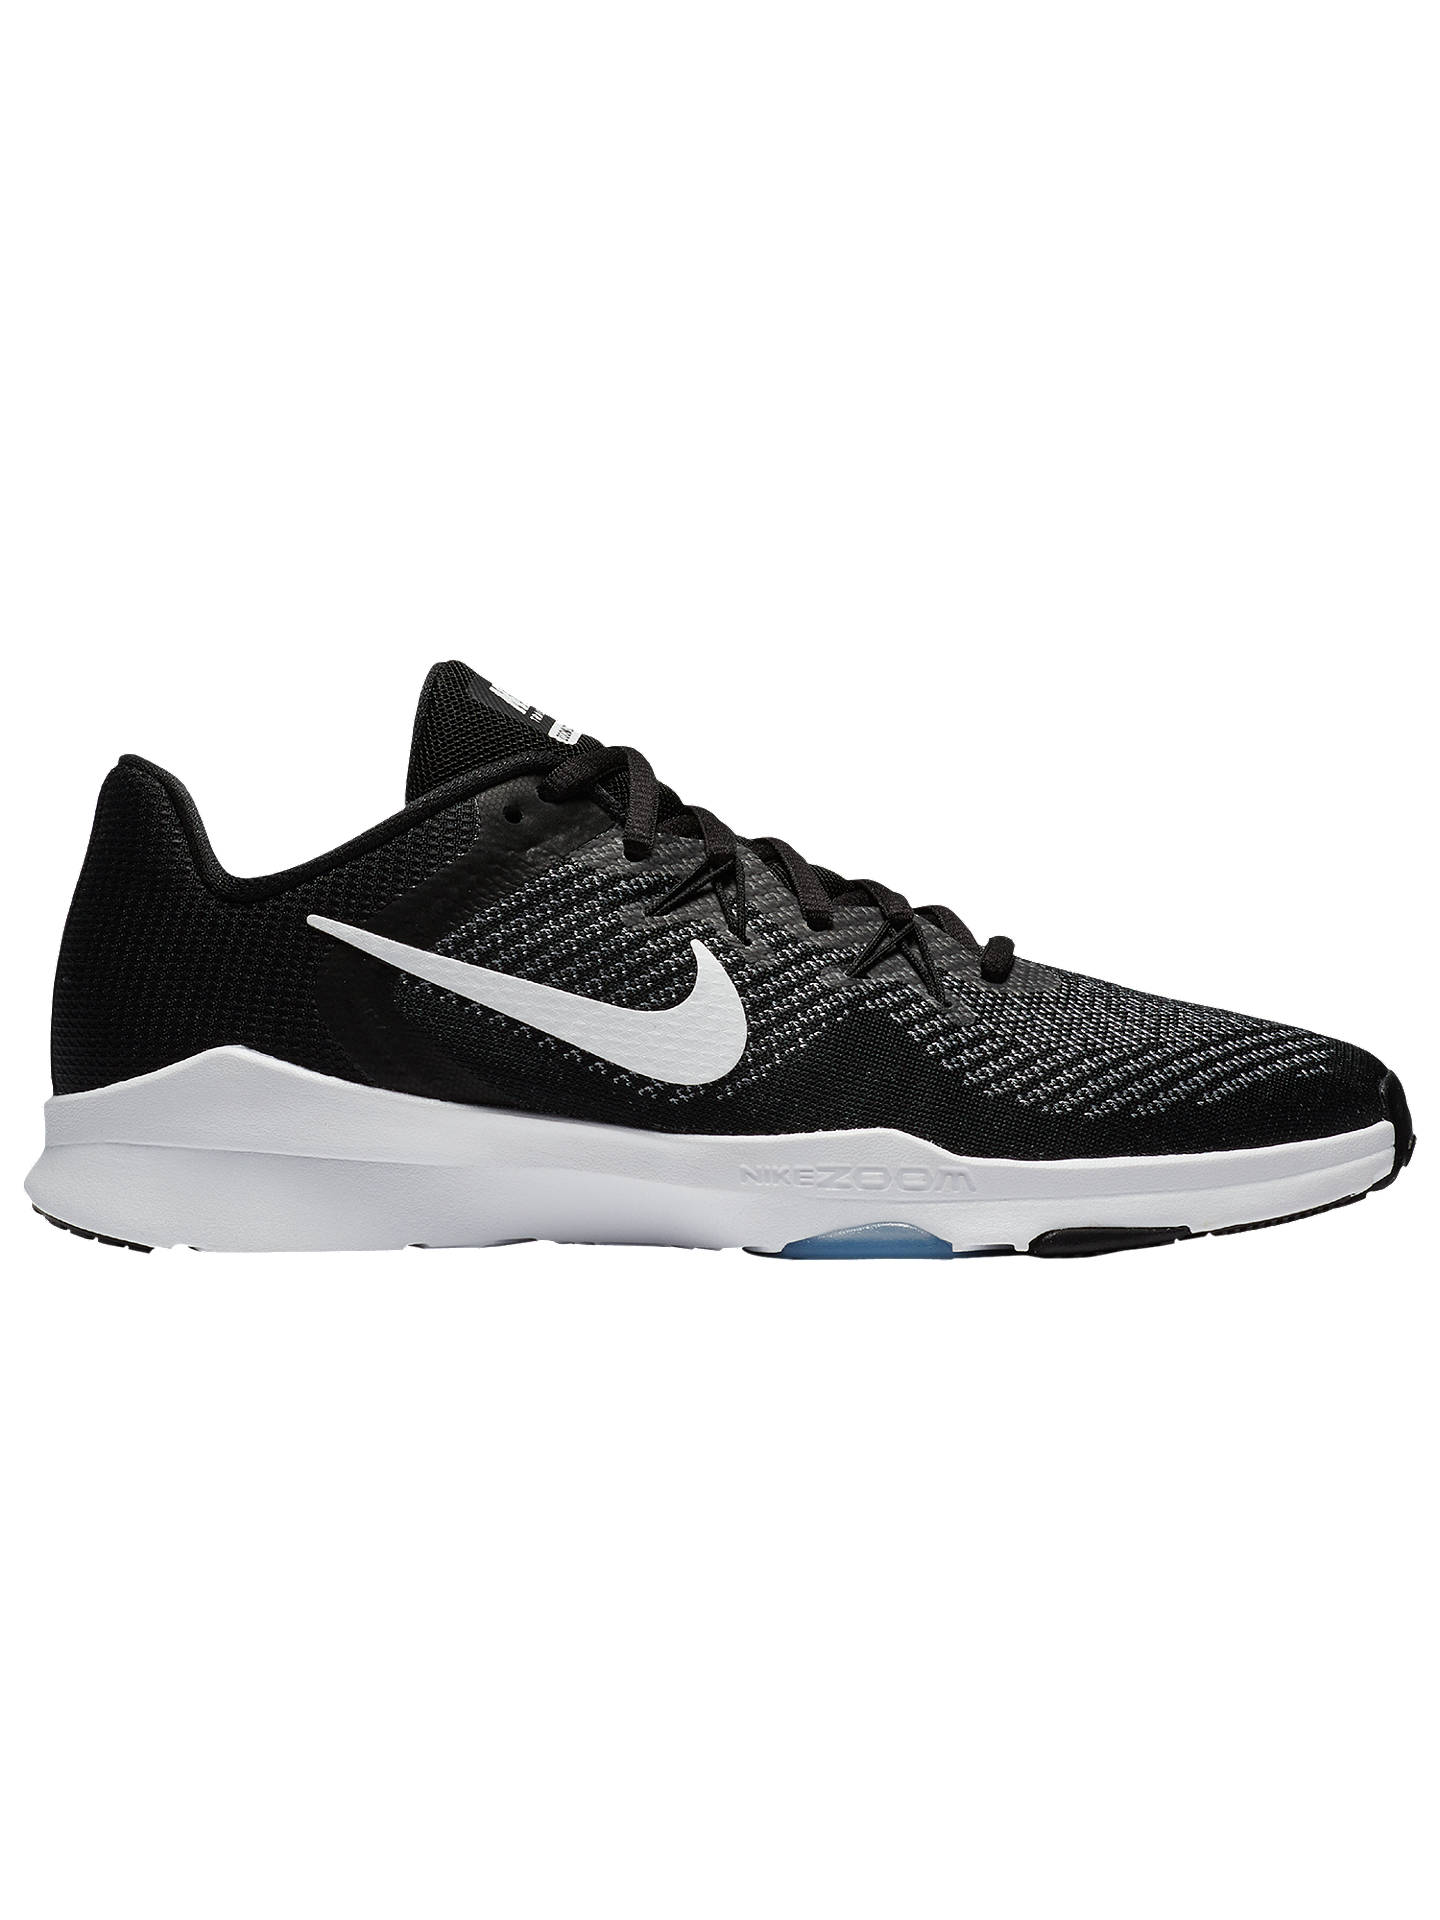 c5fe6efd5e80 Buy Nike Zoom Condition TR 2 Women s Training Shoe